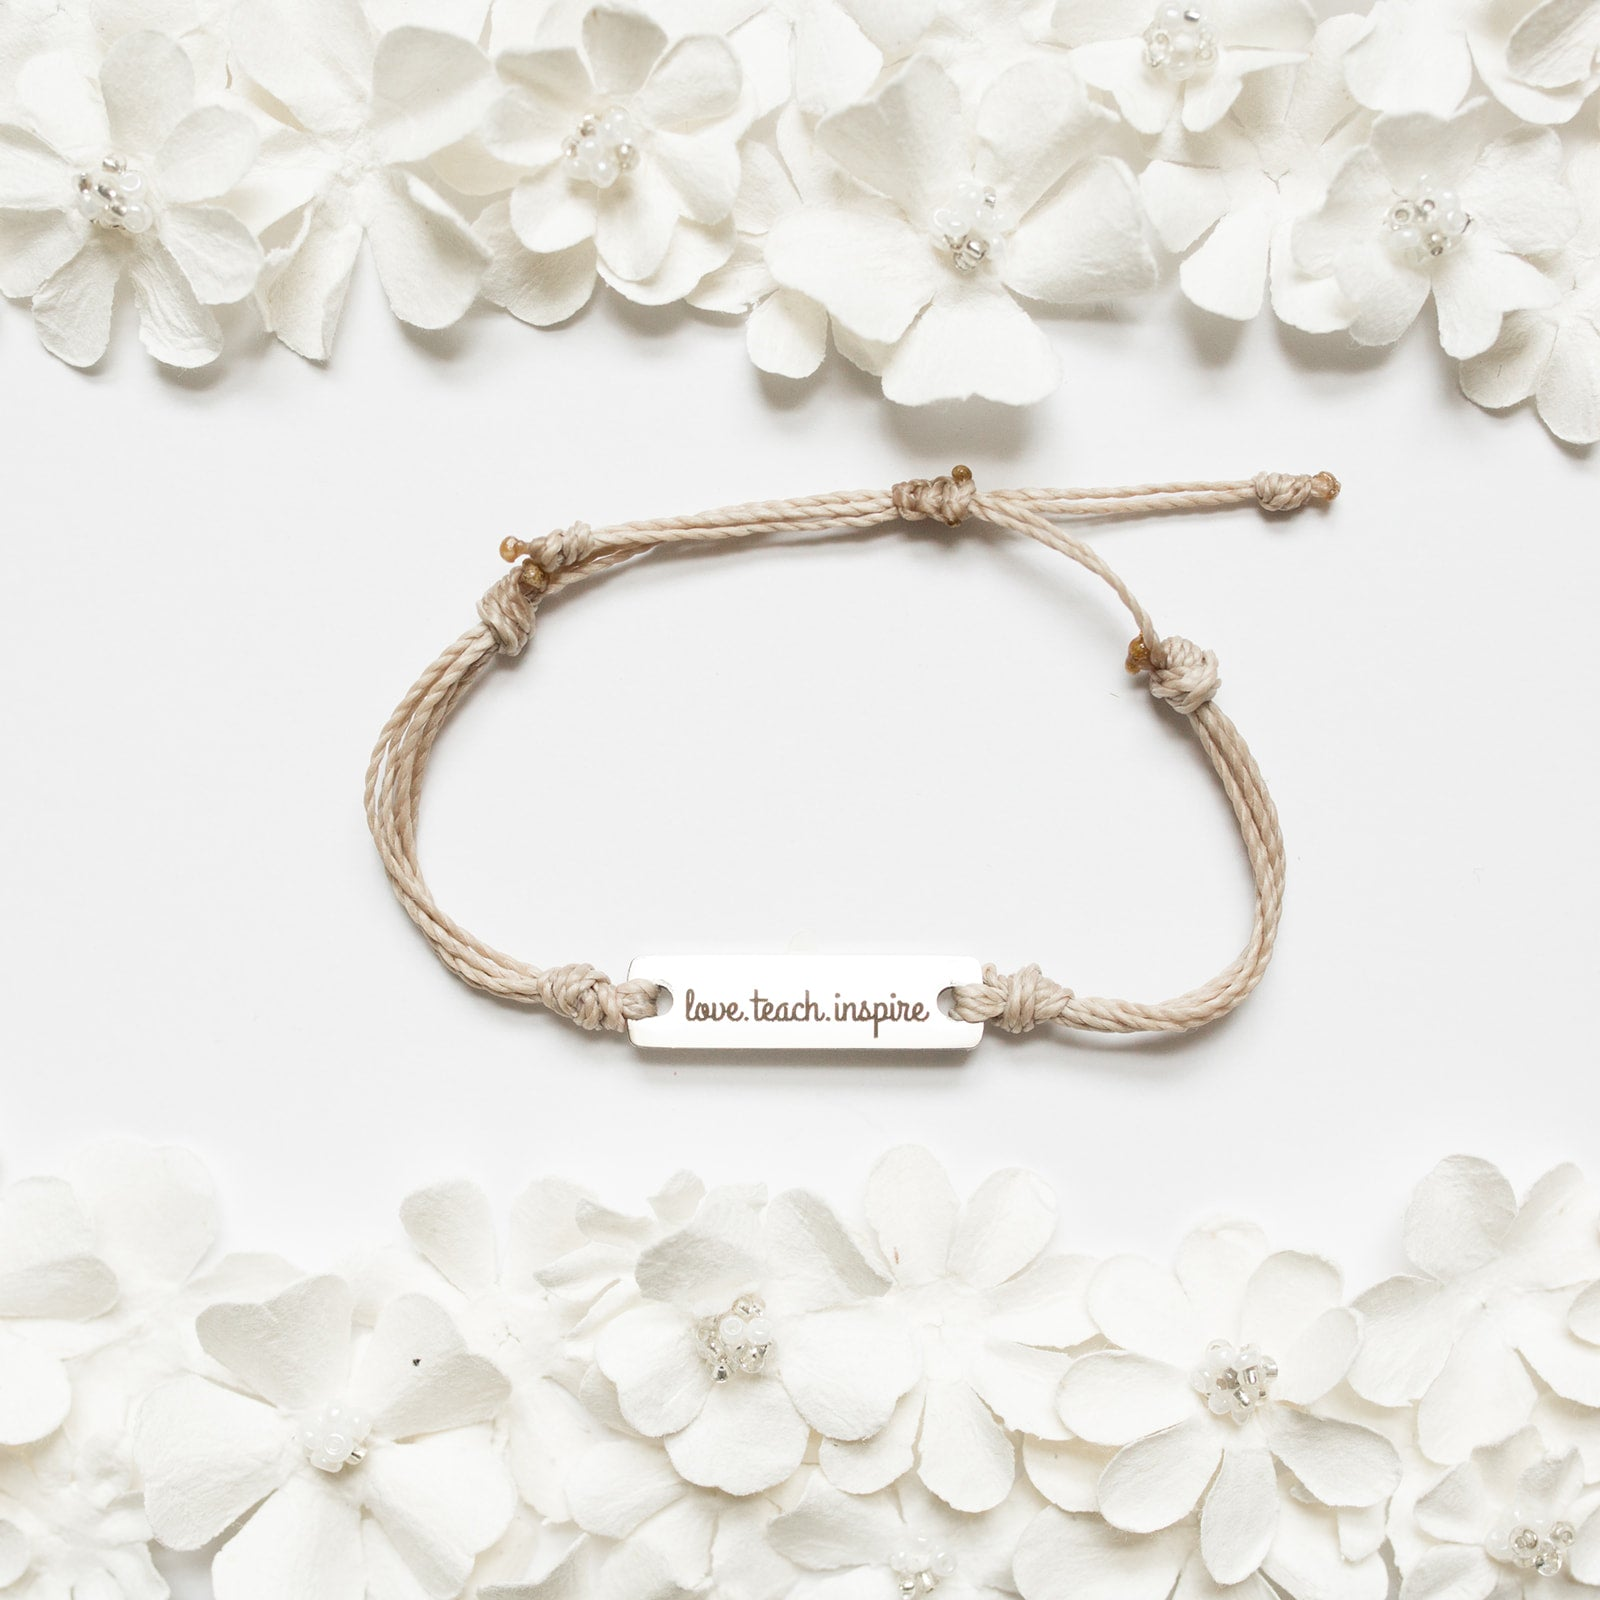 HandsTAYmped Designs |  Love, Teach, Inspire Bracelet